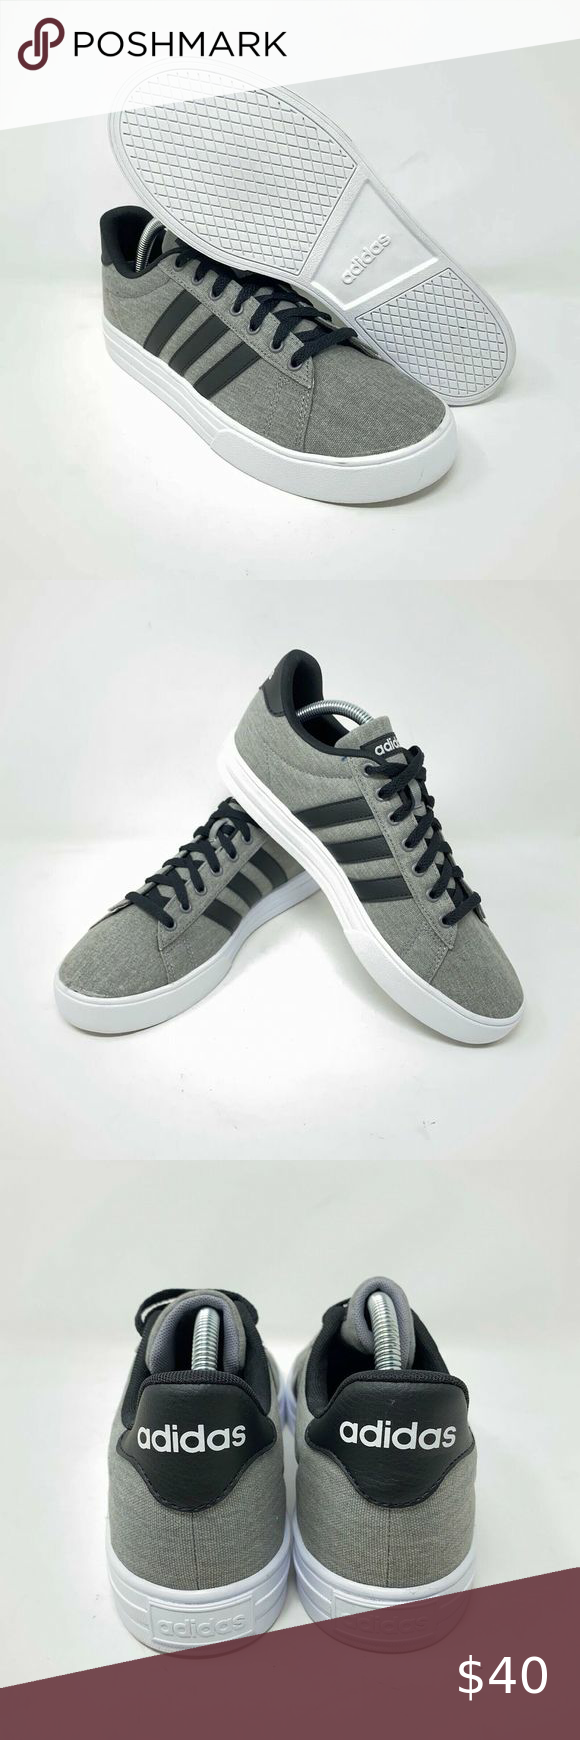 ADIDAS Daily 2.0 F36629 Gray Sneakers